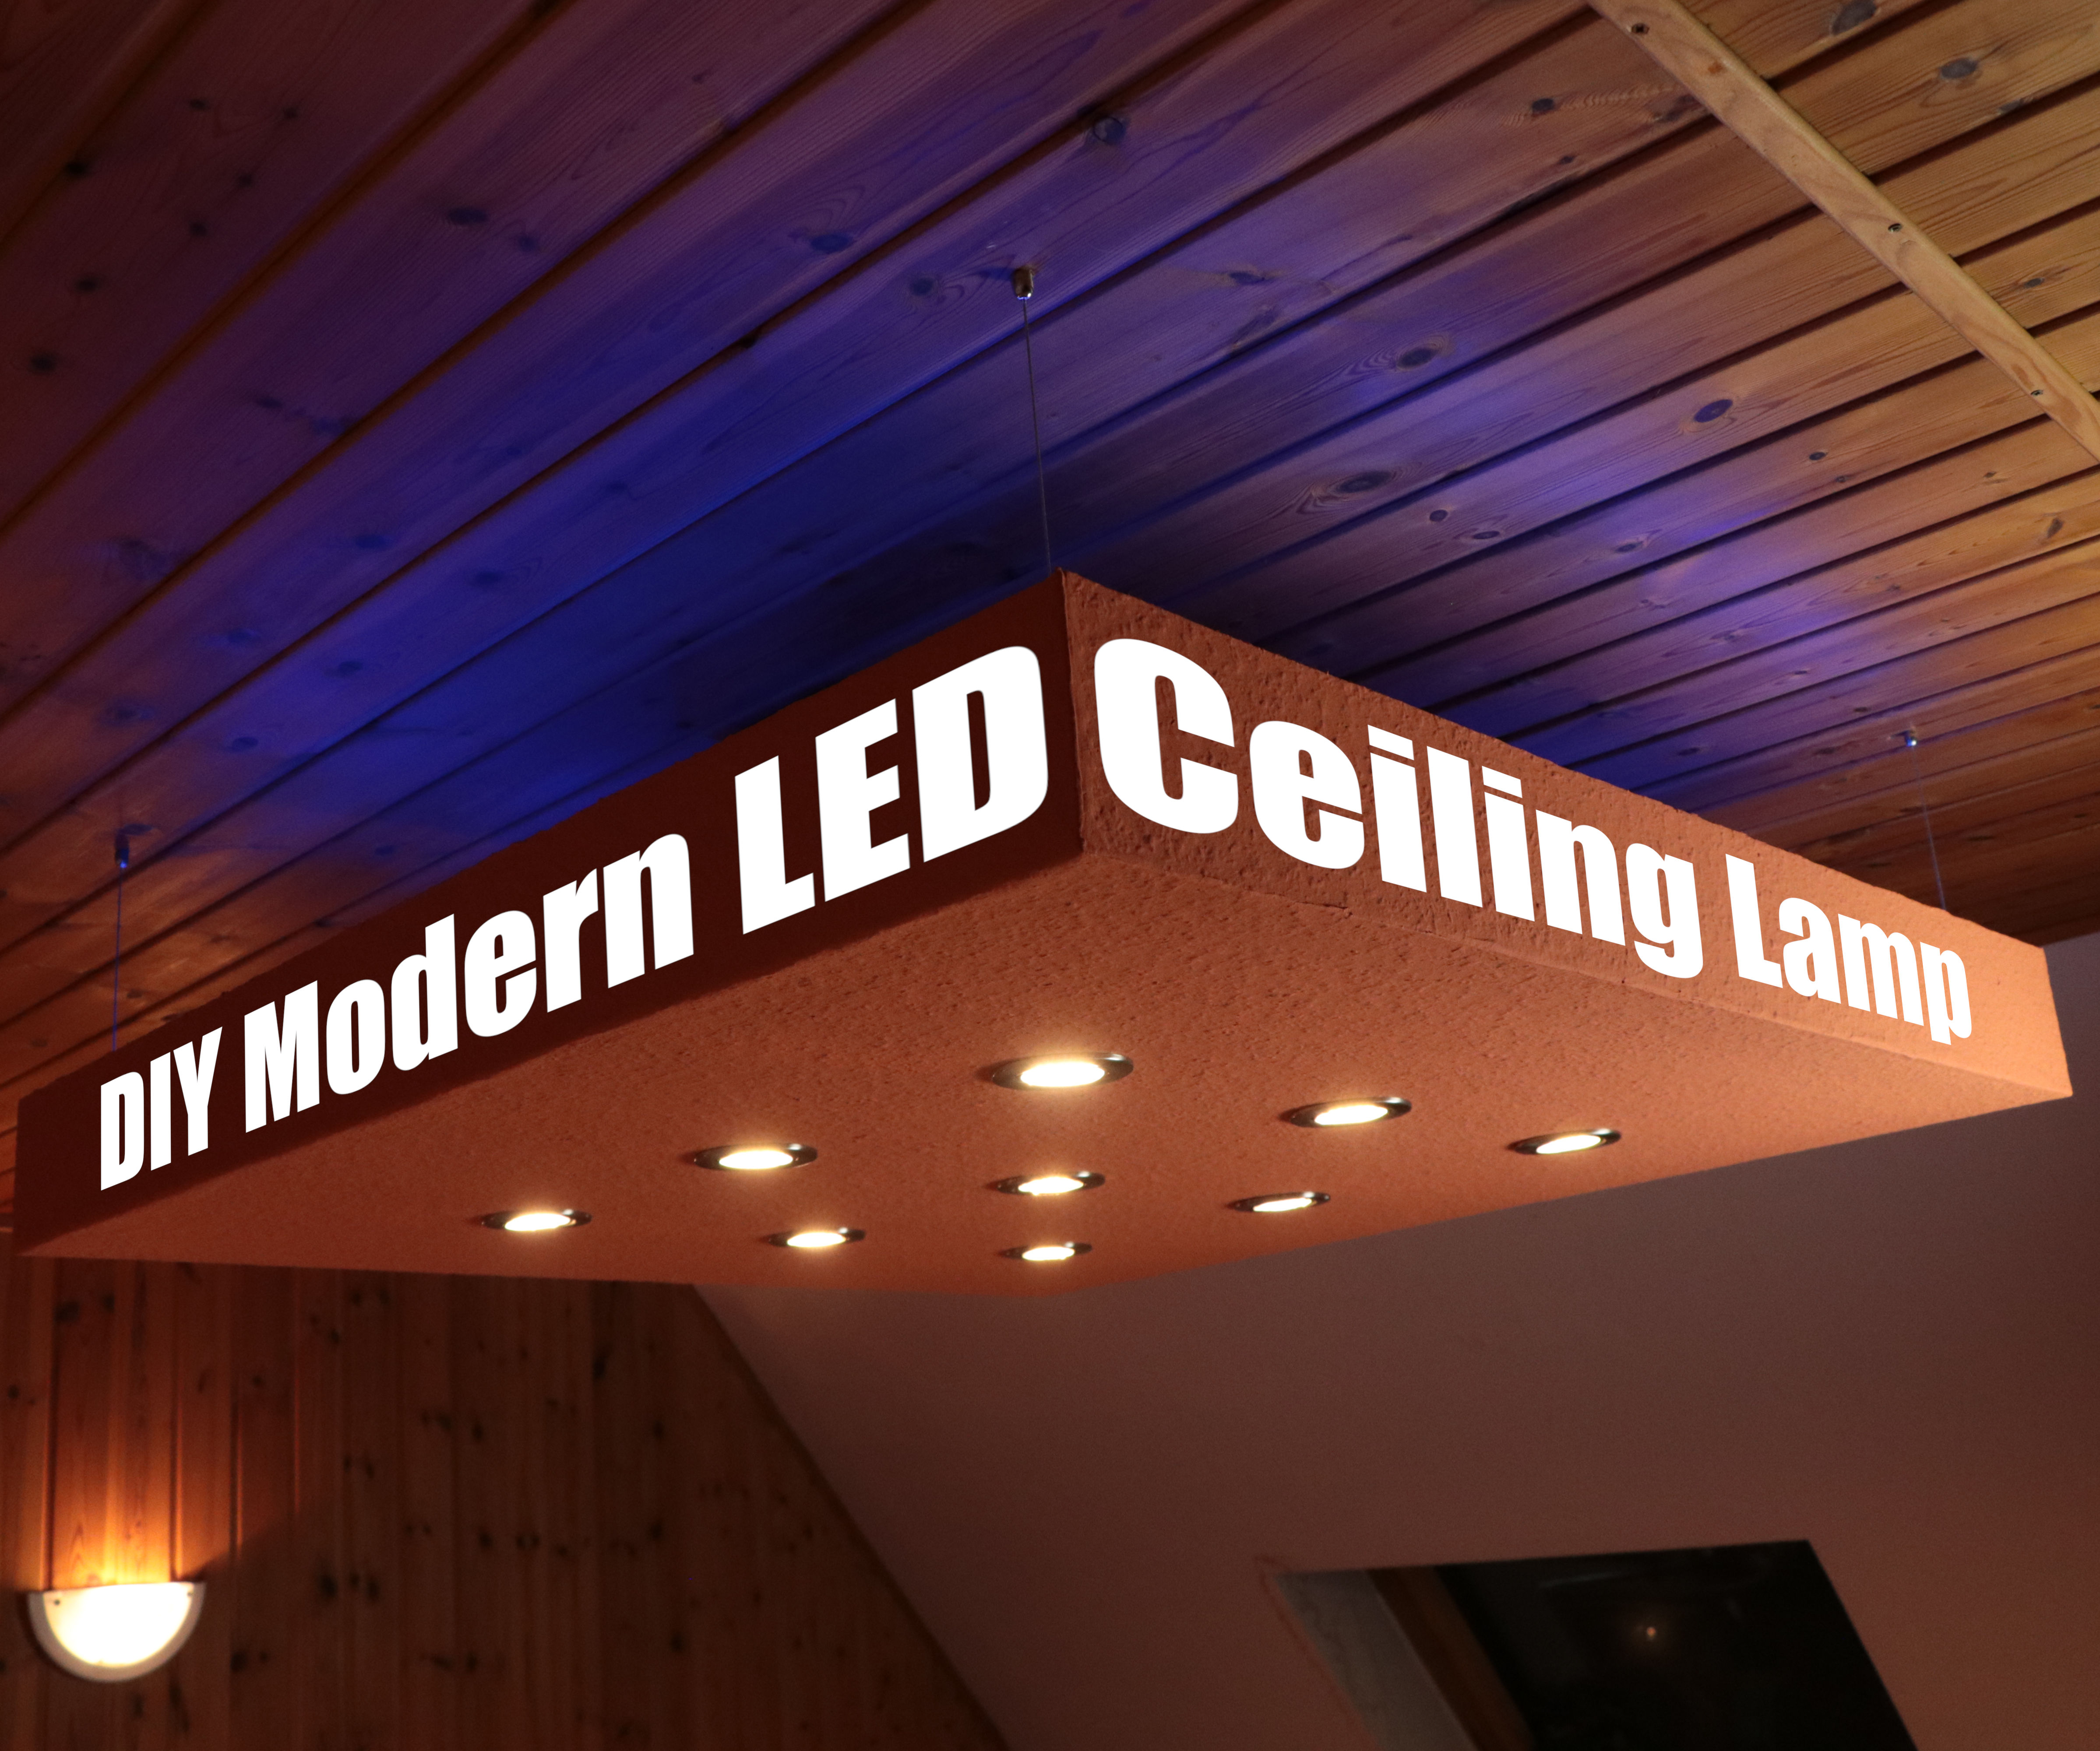 Make Your Own Modern LED Ceiling Lamp